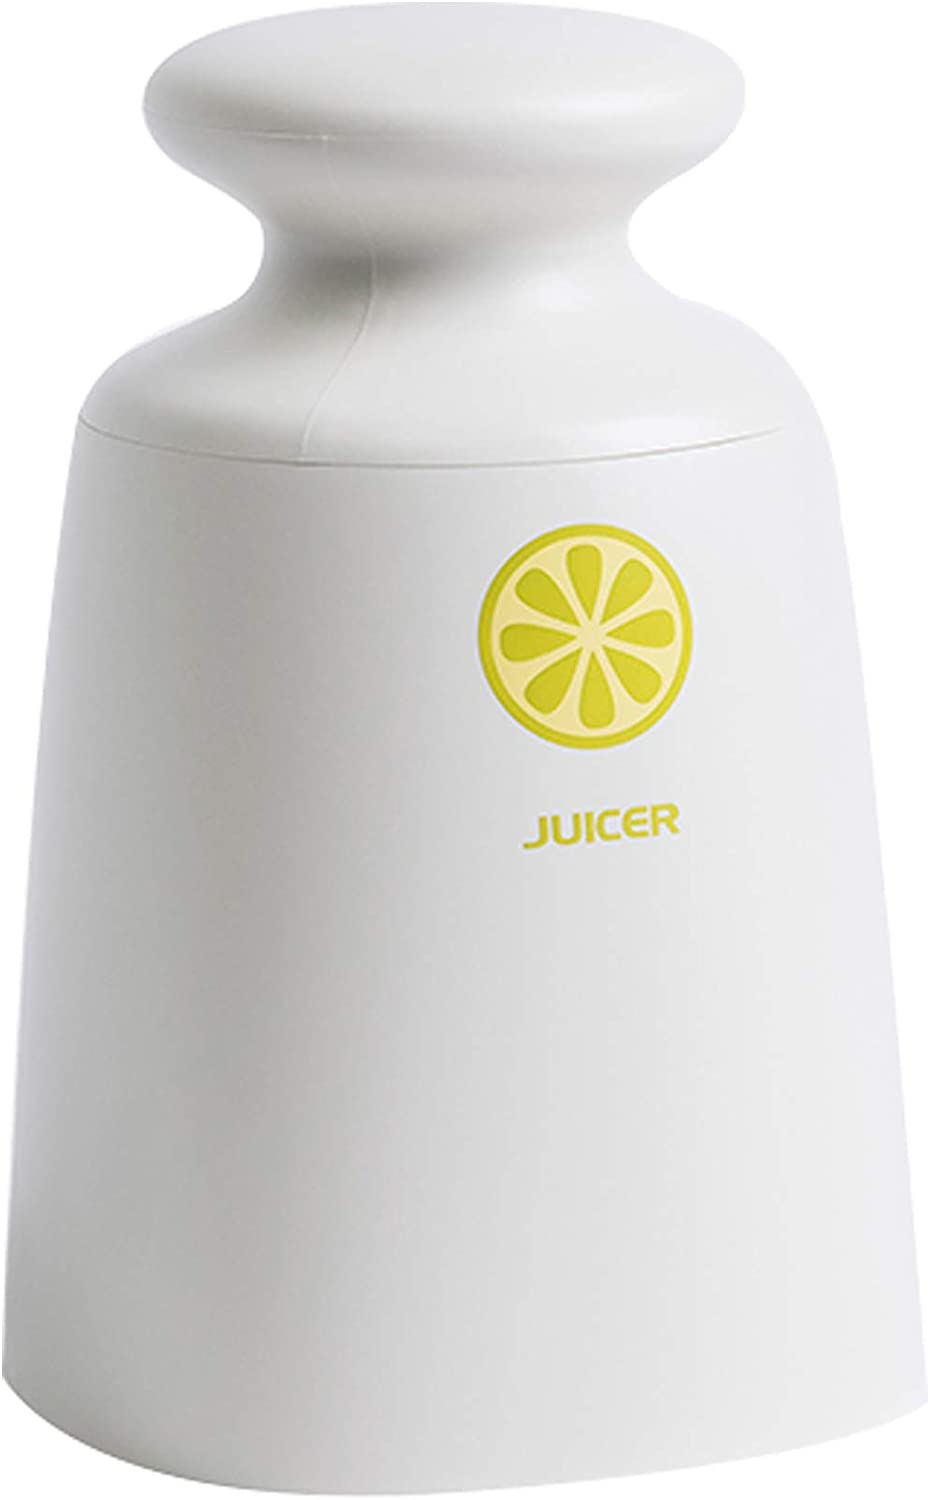 Citrus Juicer, Lemon Squeezer - Hand-held Manual Juicer | Includes 1-cup Glass container | Press and Twist (White)